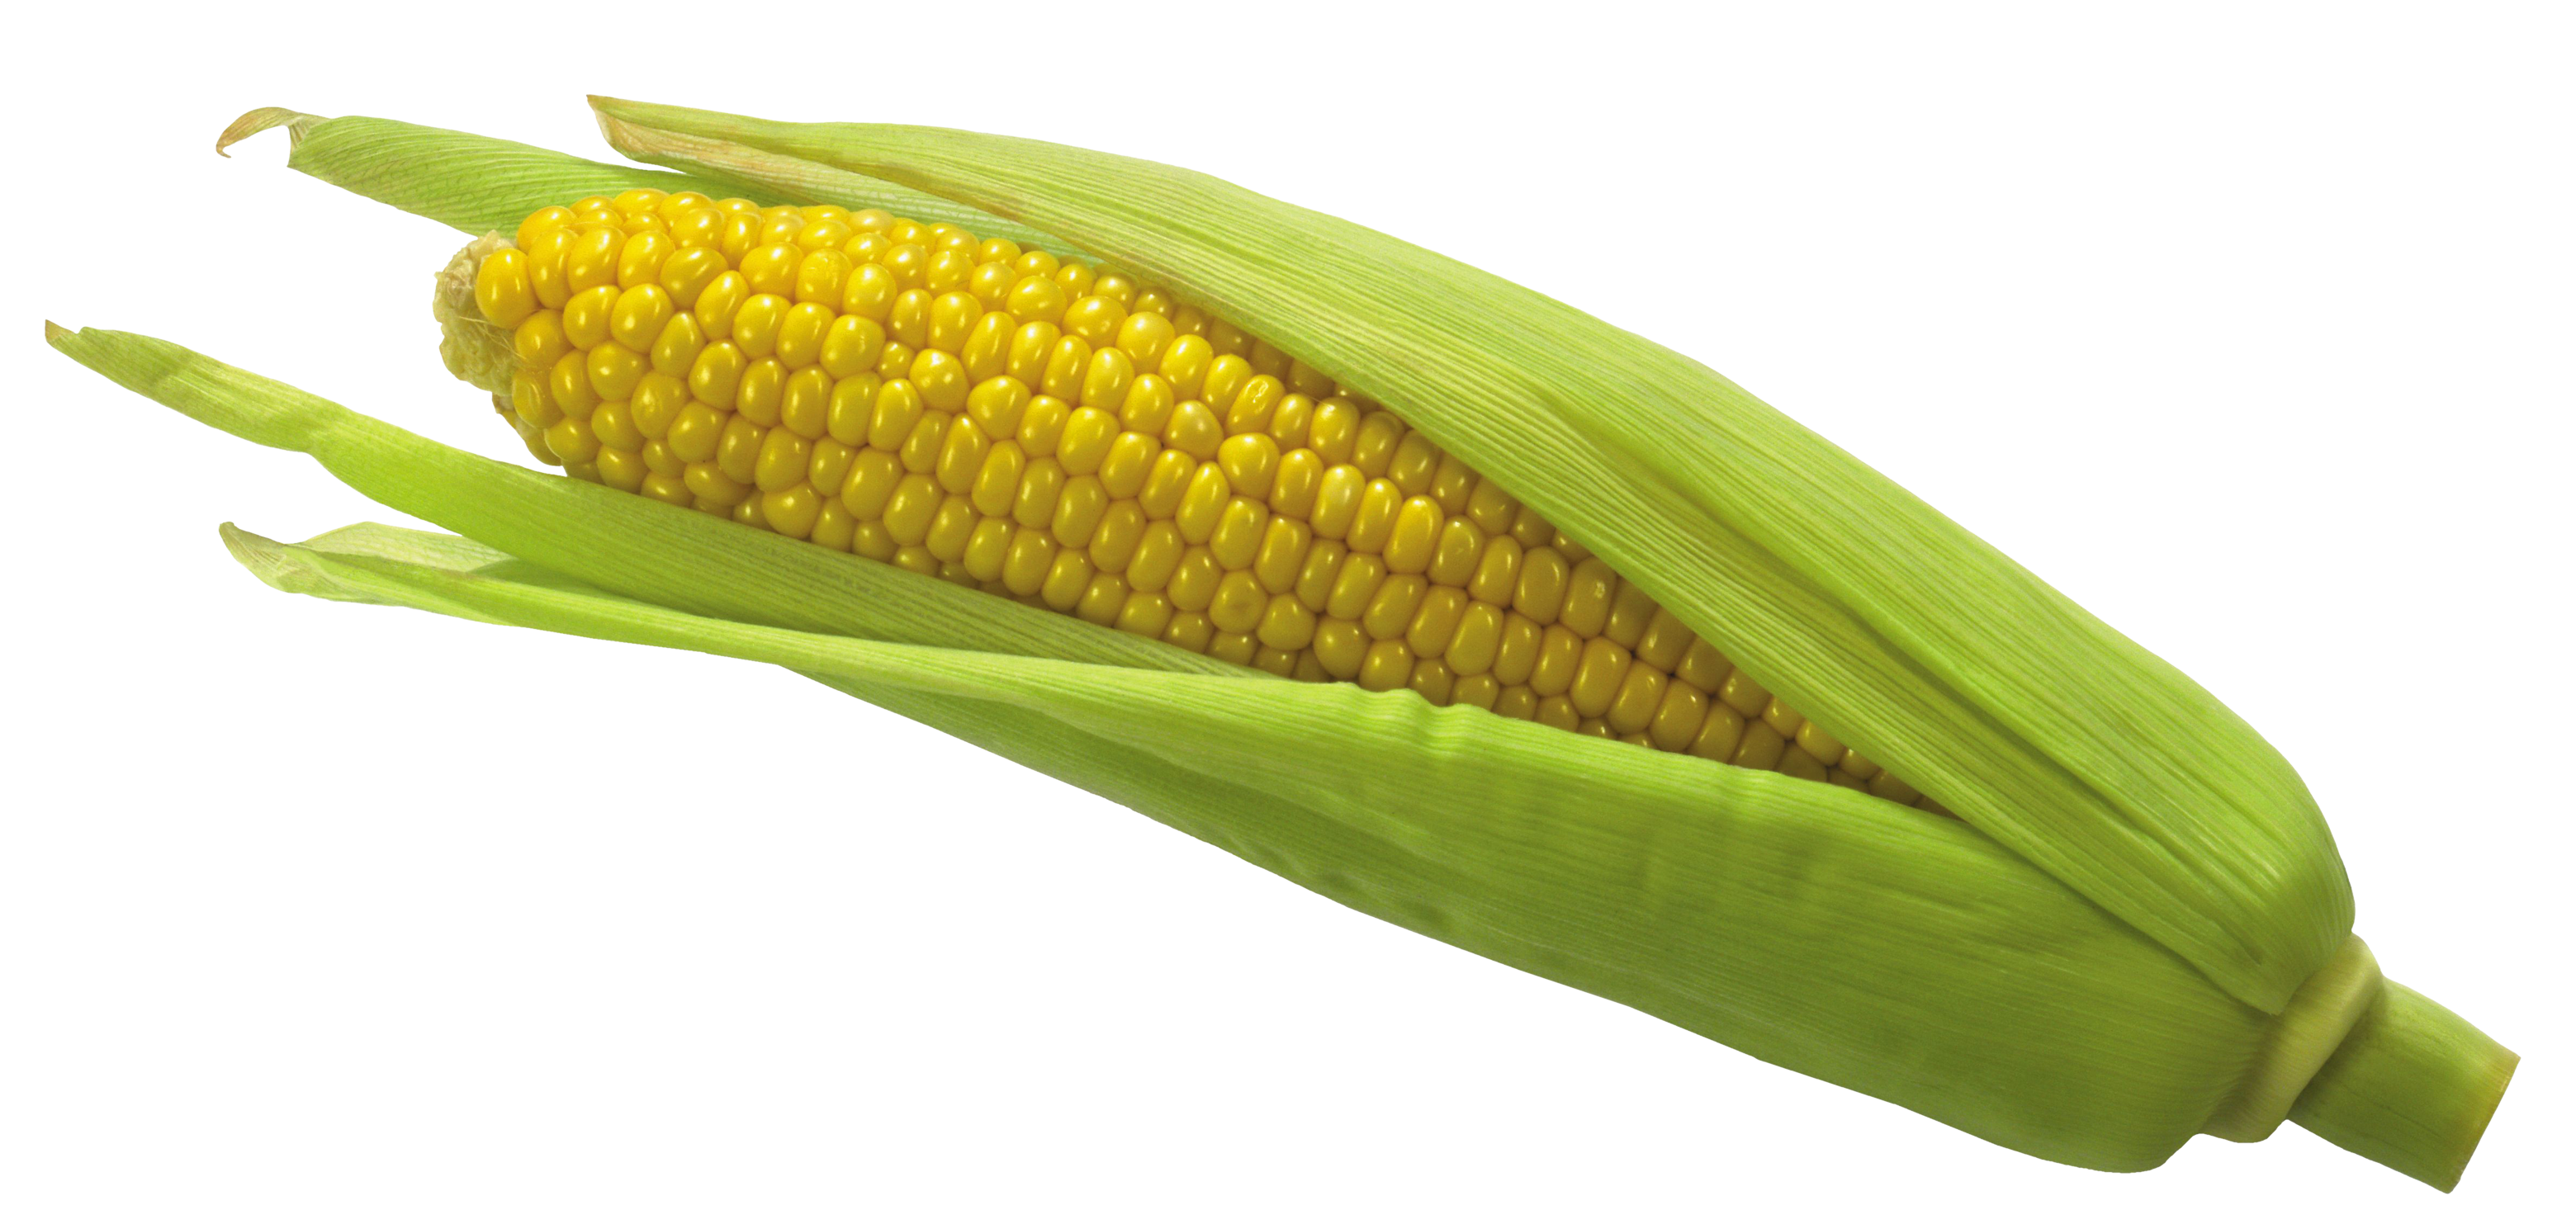 Vegetables clipart corn. Png picture gallery yopriceville